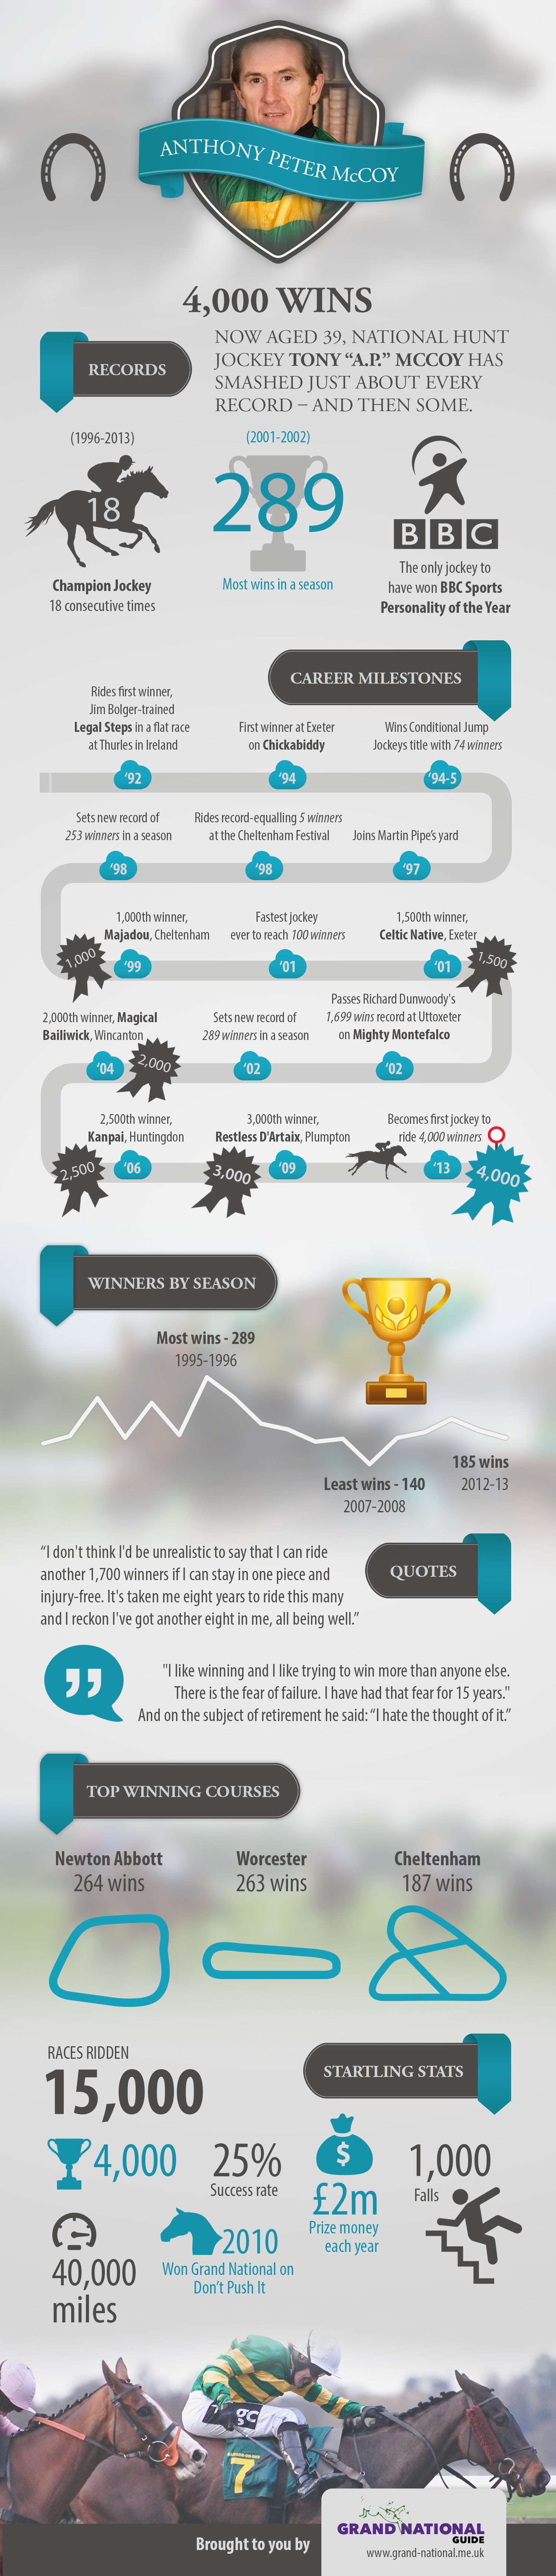 Grand National Guide Infographic